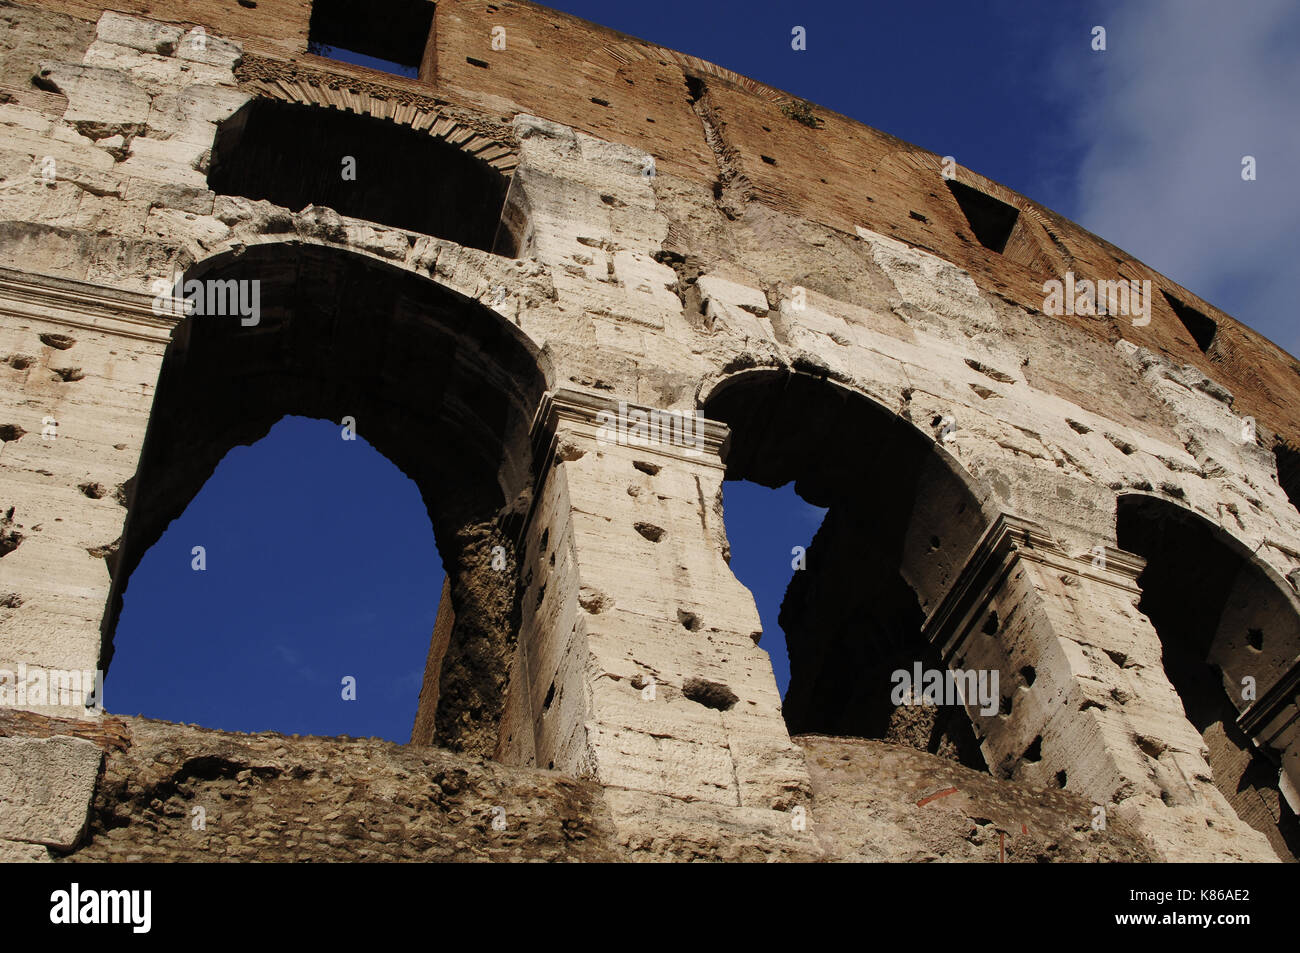 Flavian Amphitheatre or Coliseum. Roman period. Built in 70-80 CE, Flavian dynasty. Detail. Exterior. - Stock Image